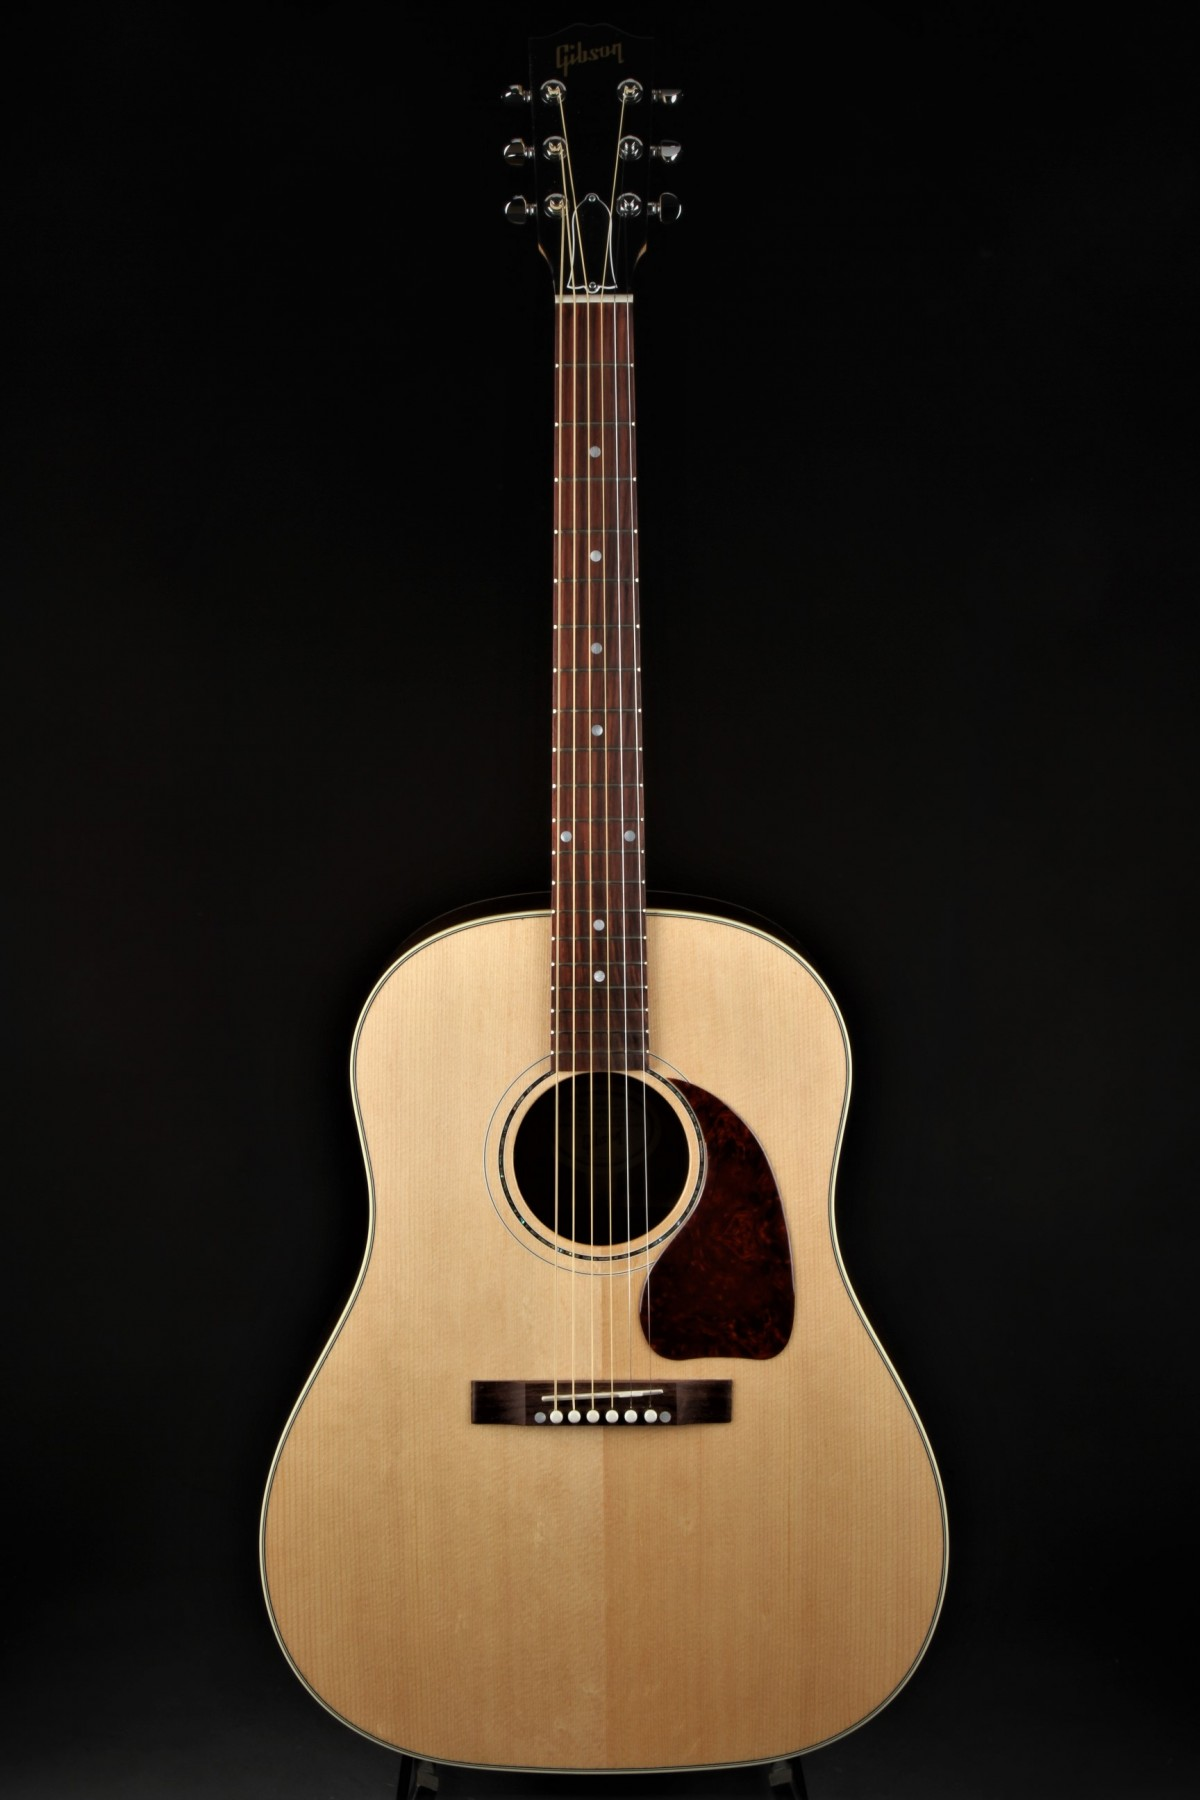 Used - Gibson Montana J15 2018 - Antique Natural - Acoustic Guitar